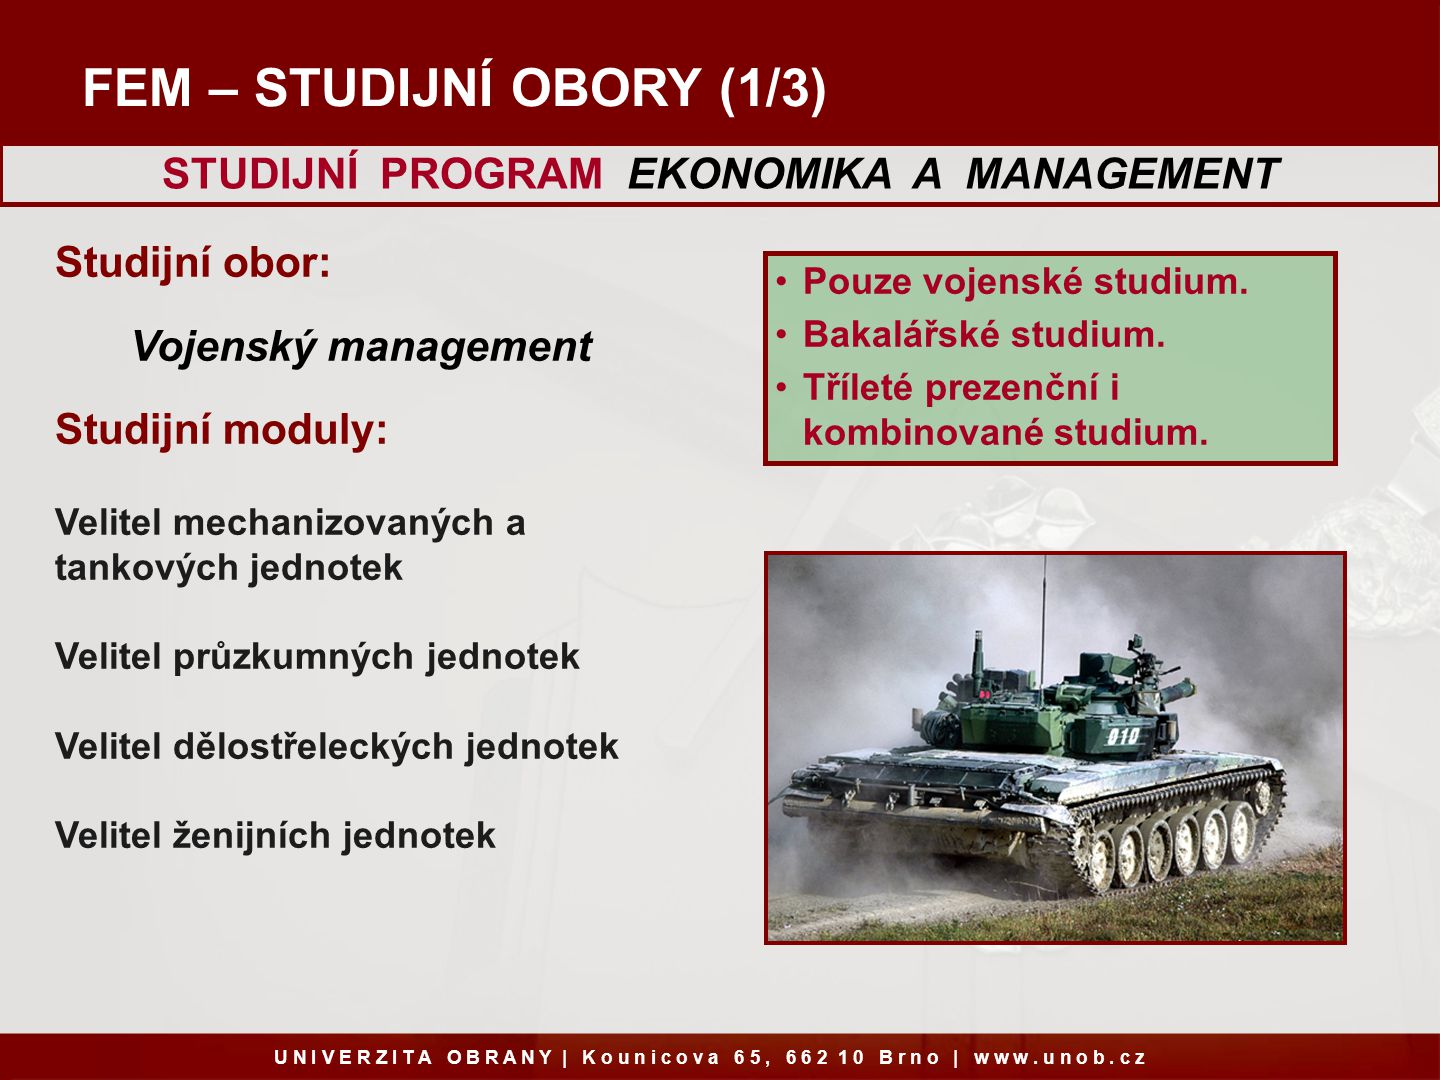 STUDIJNÍ PROGRAM EKONOMIKA A MANAGEMENT